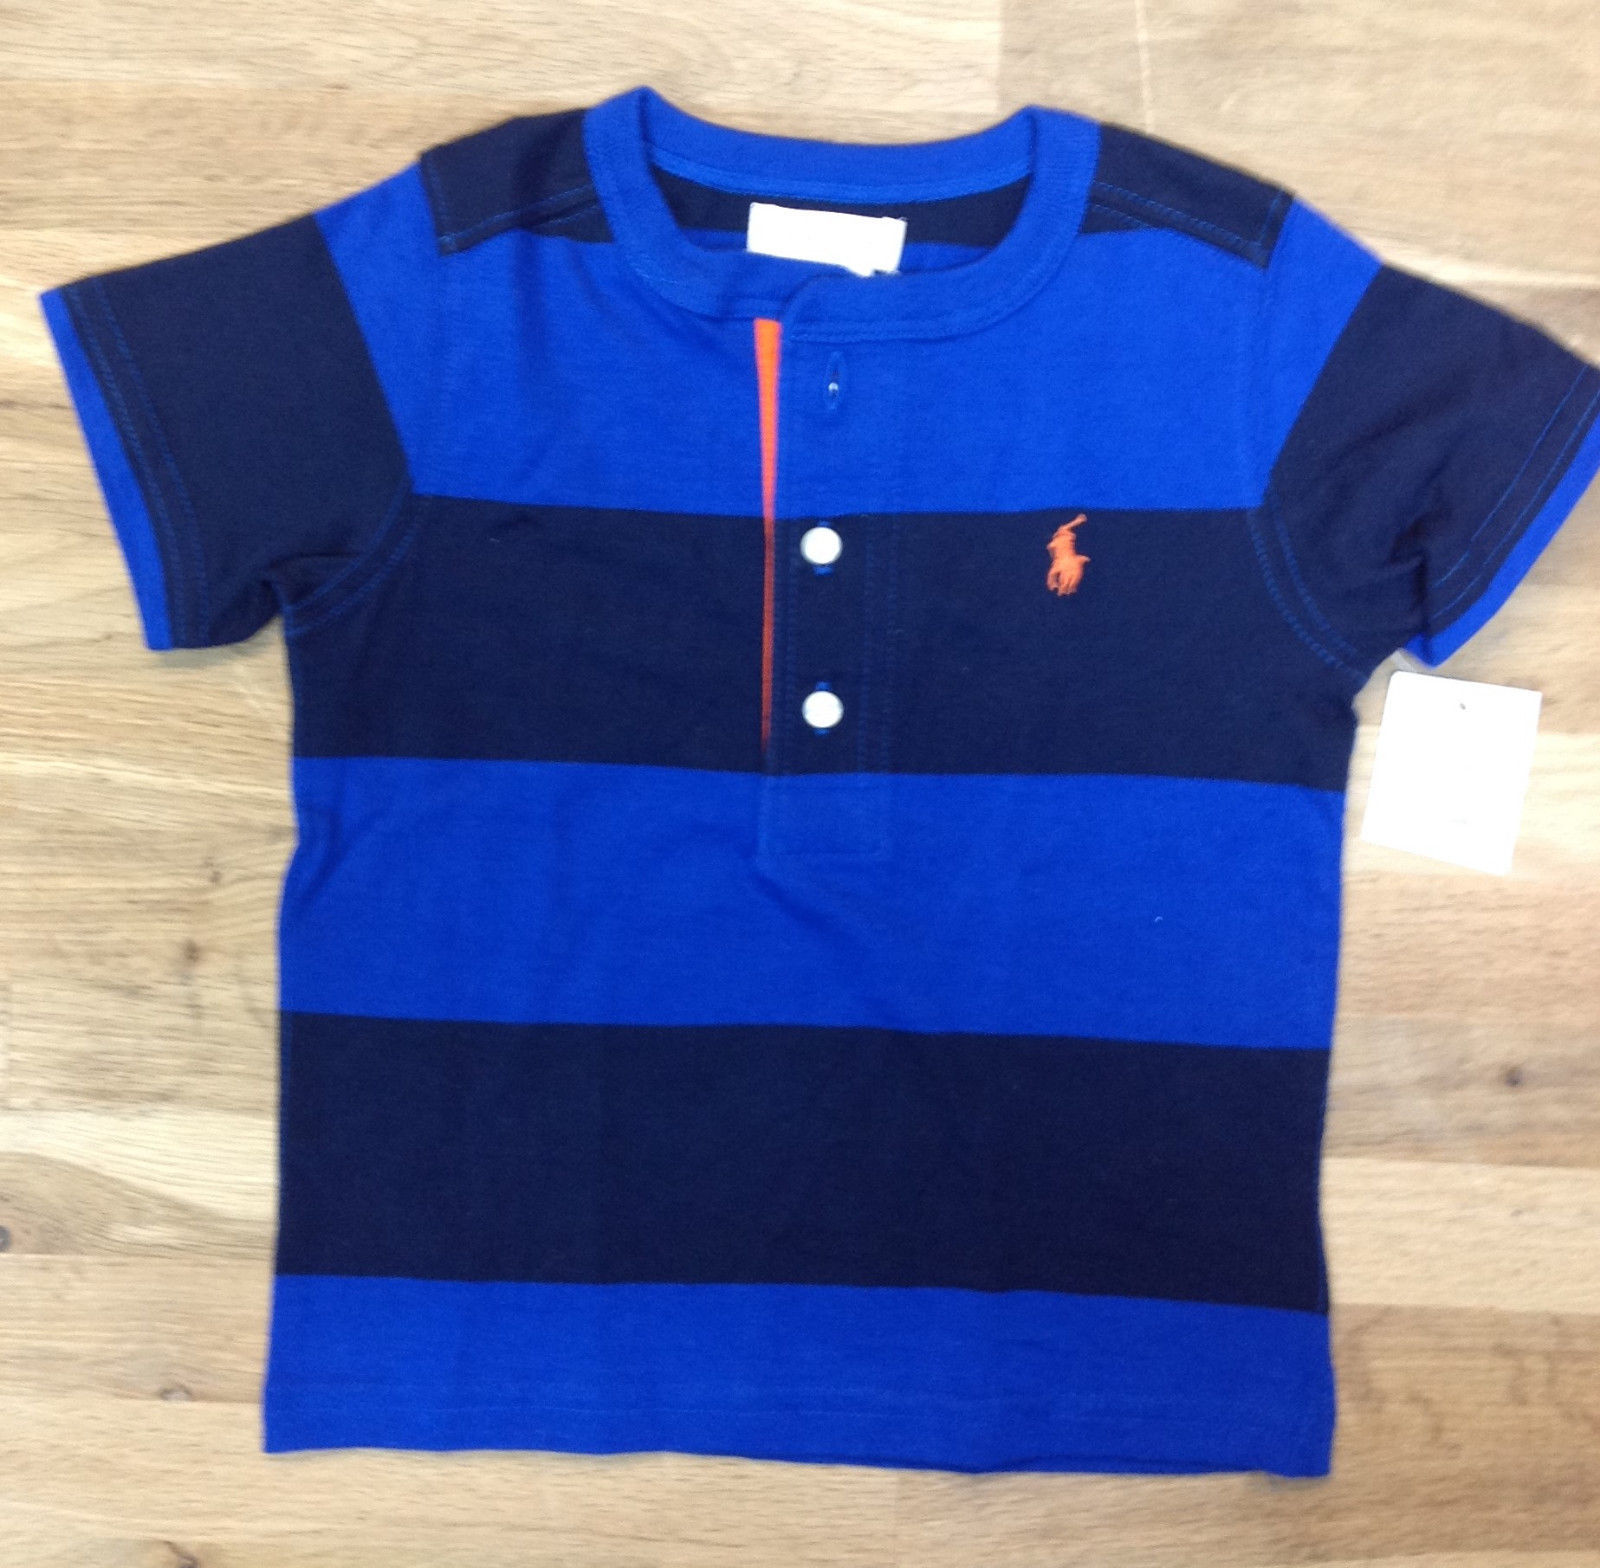 Primary image for Ralph Lauren Boys' Bold-Striped Henley T-Shirt, Navy/Blue, Size 18 M, MSRP $35